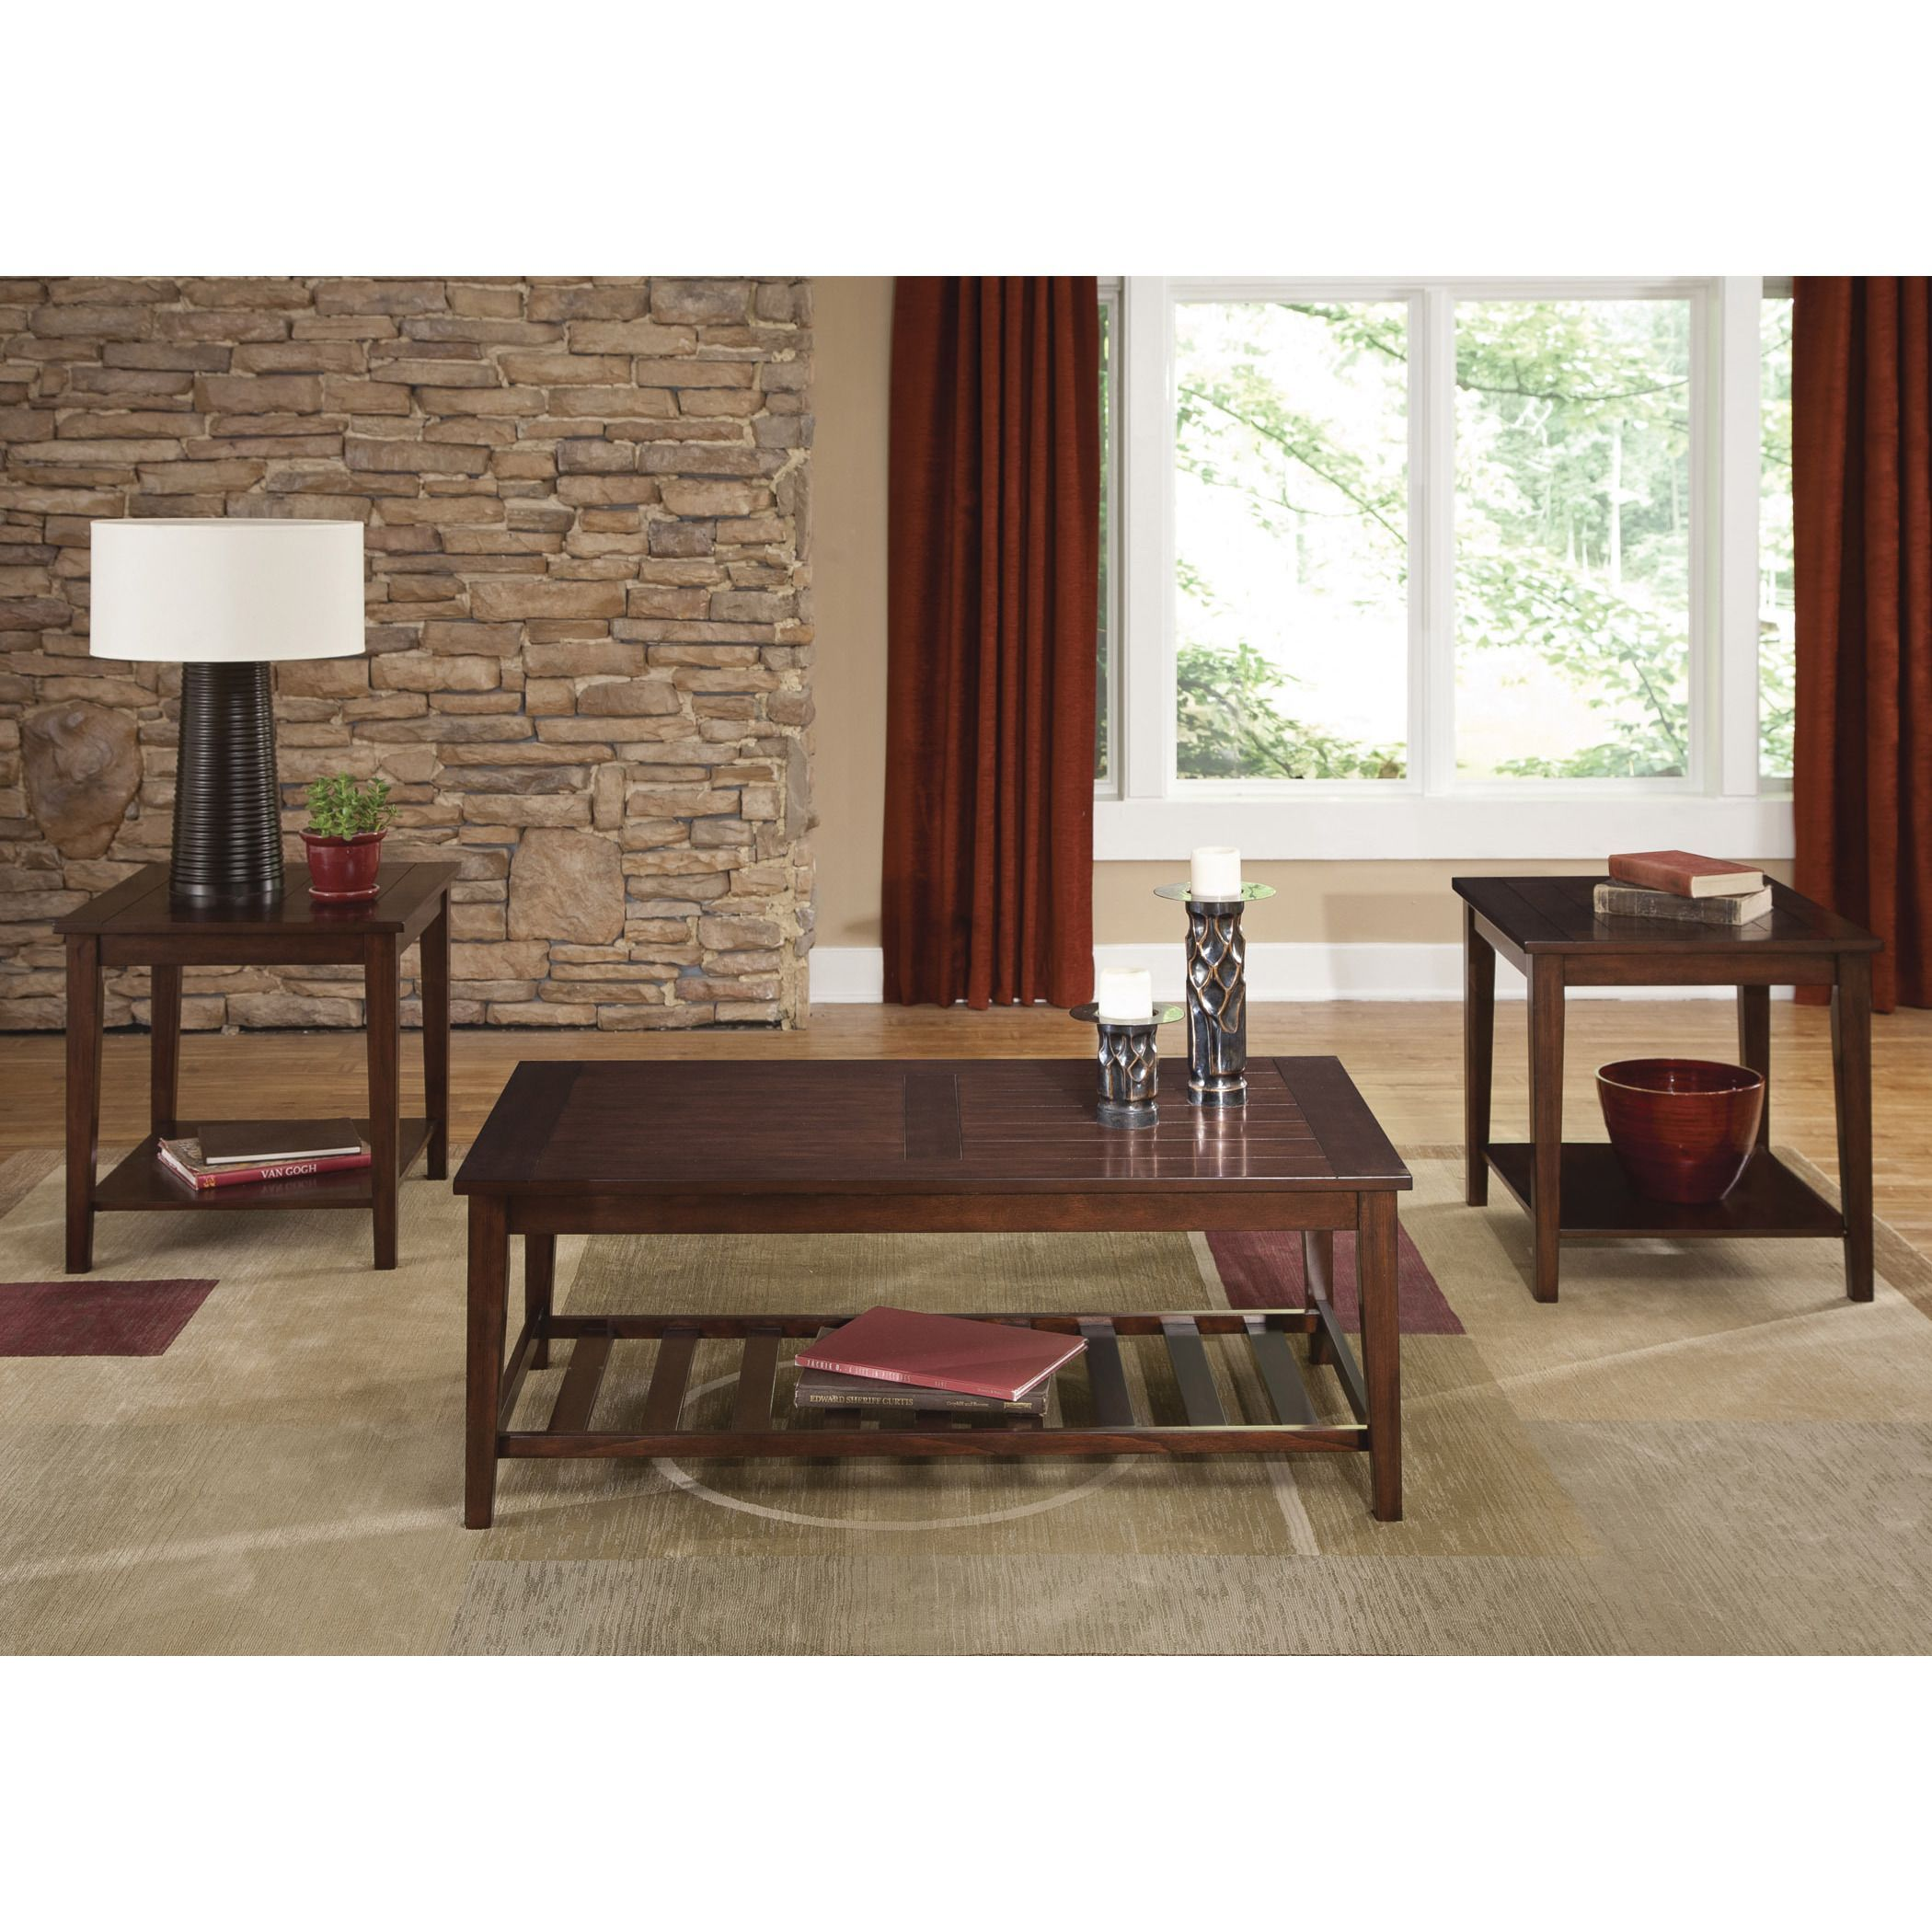 Complete your classic or modern home with this three-piece living room set from the Traditional collection by Liberty. This set includes a cocktail table and two matching end tables that are enhanced by the warm spiced rum finish.